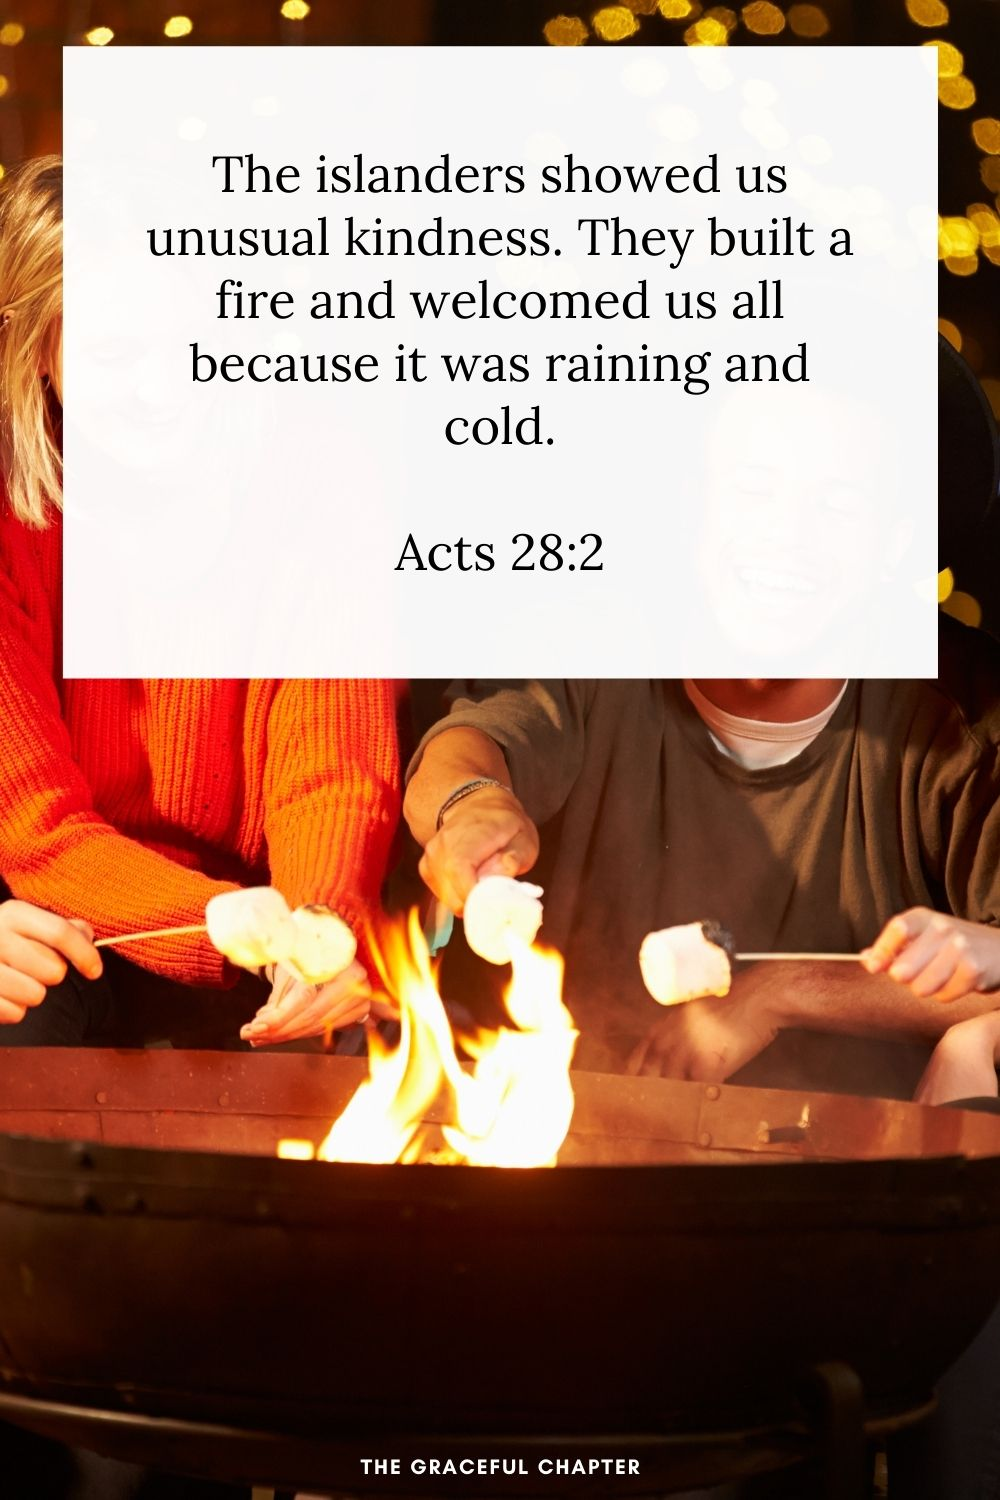 The islanders showed us unusual kindness. They built a fire and welcomed us all because it was raining and cold. Acts 28:2